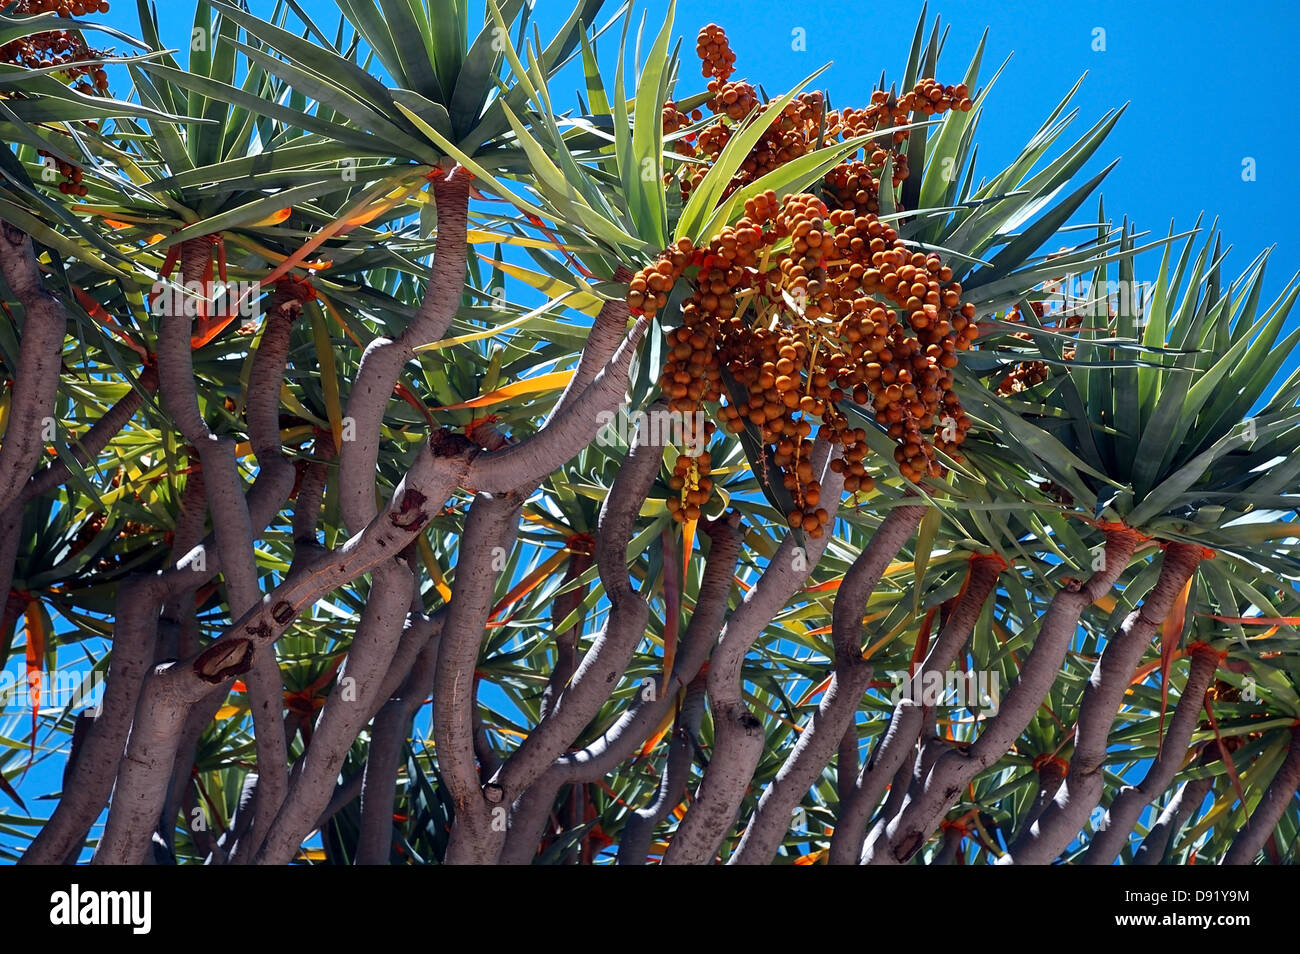 Dragon's blood tree (Dracaena draco) with orange berries, sap of which was used by ancient Egyptians in embalming - Stock Image